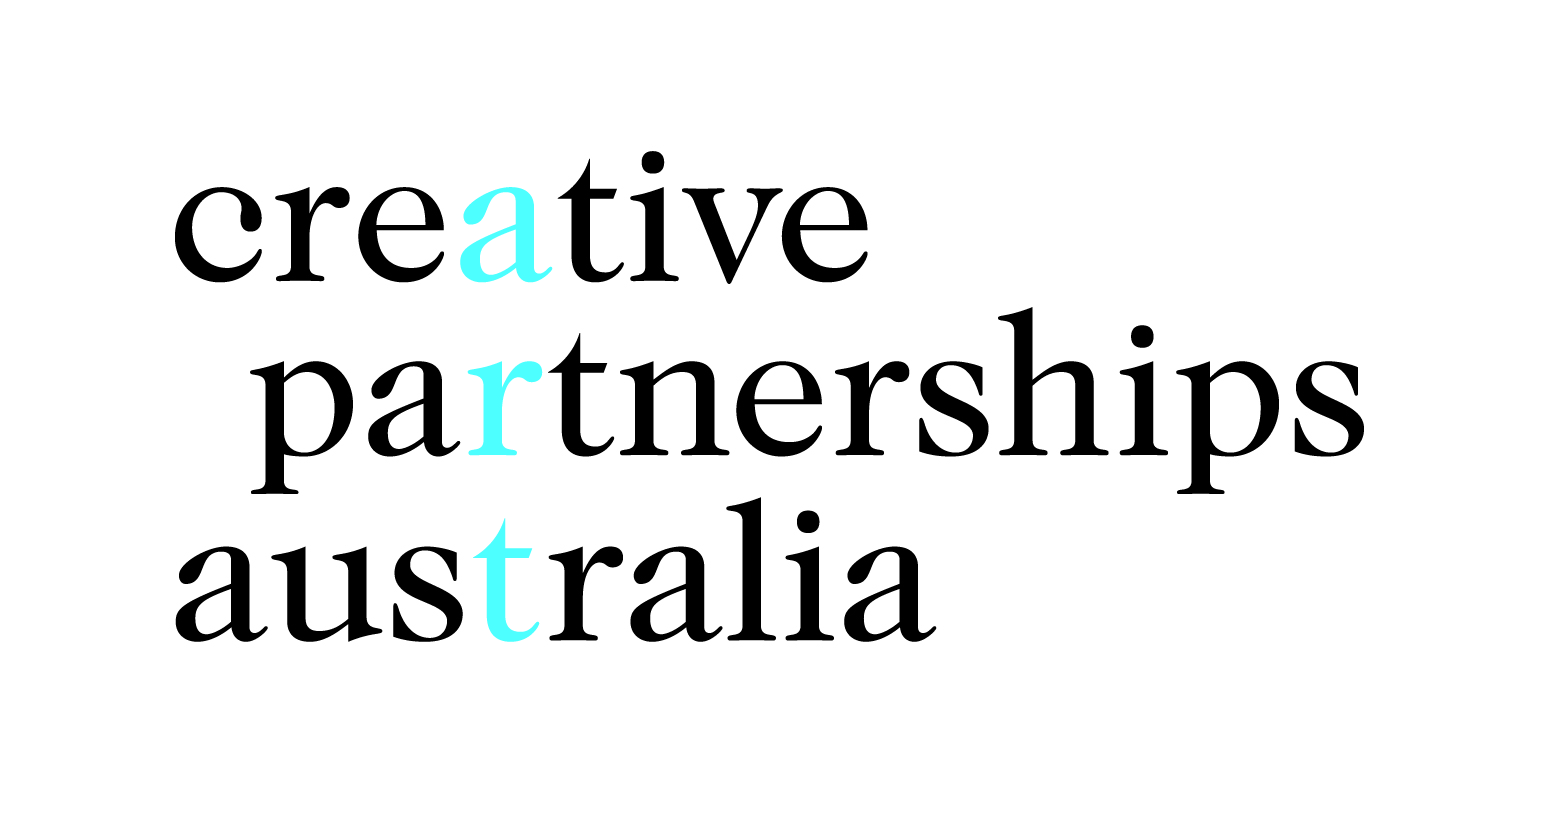 Creative Partnerships Ausutralia